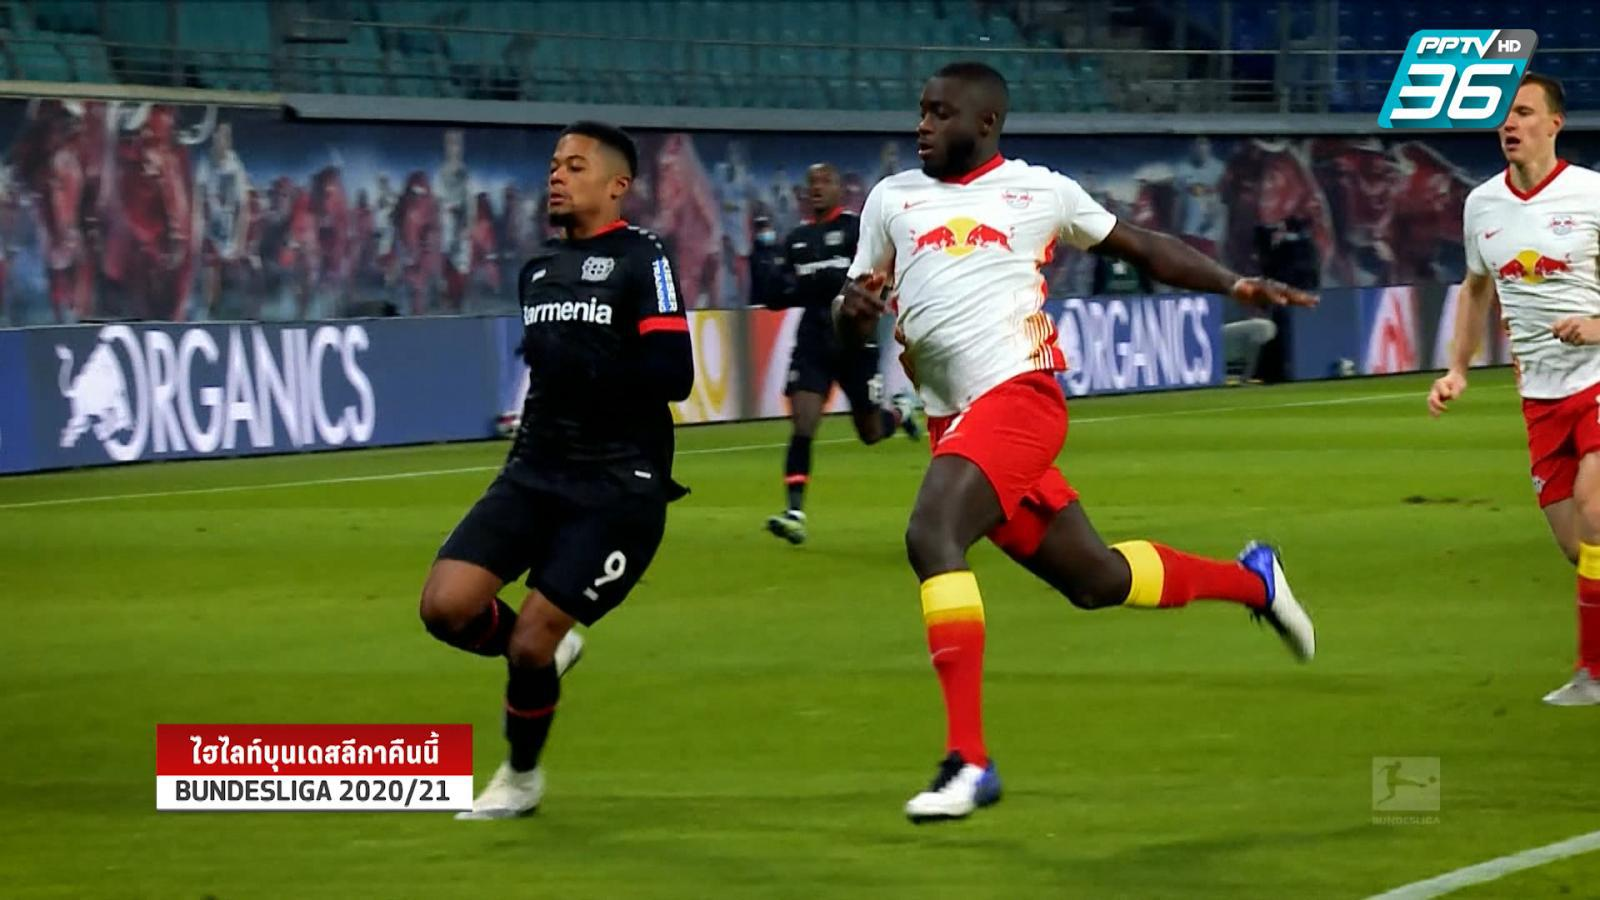 HIGHLIGHTS BUNDESLIGA EP.20